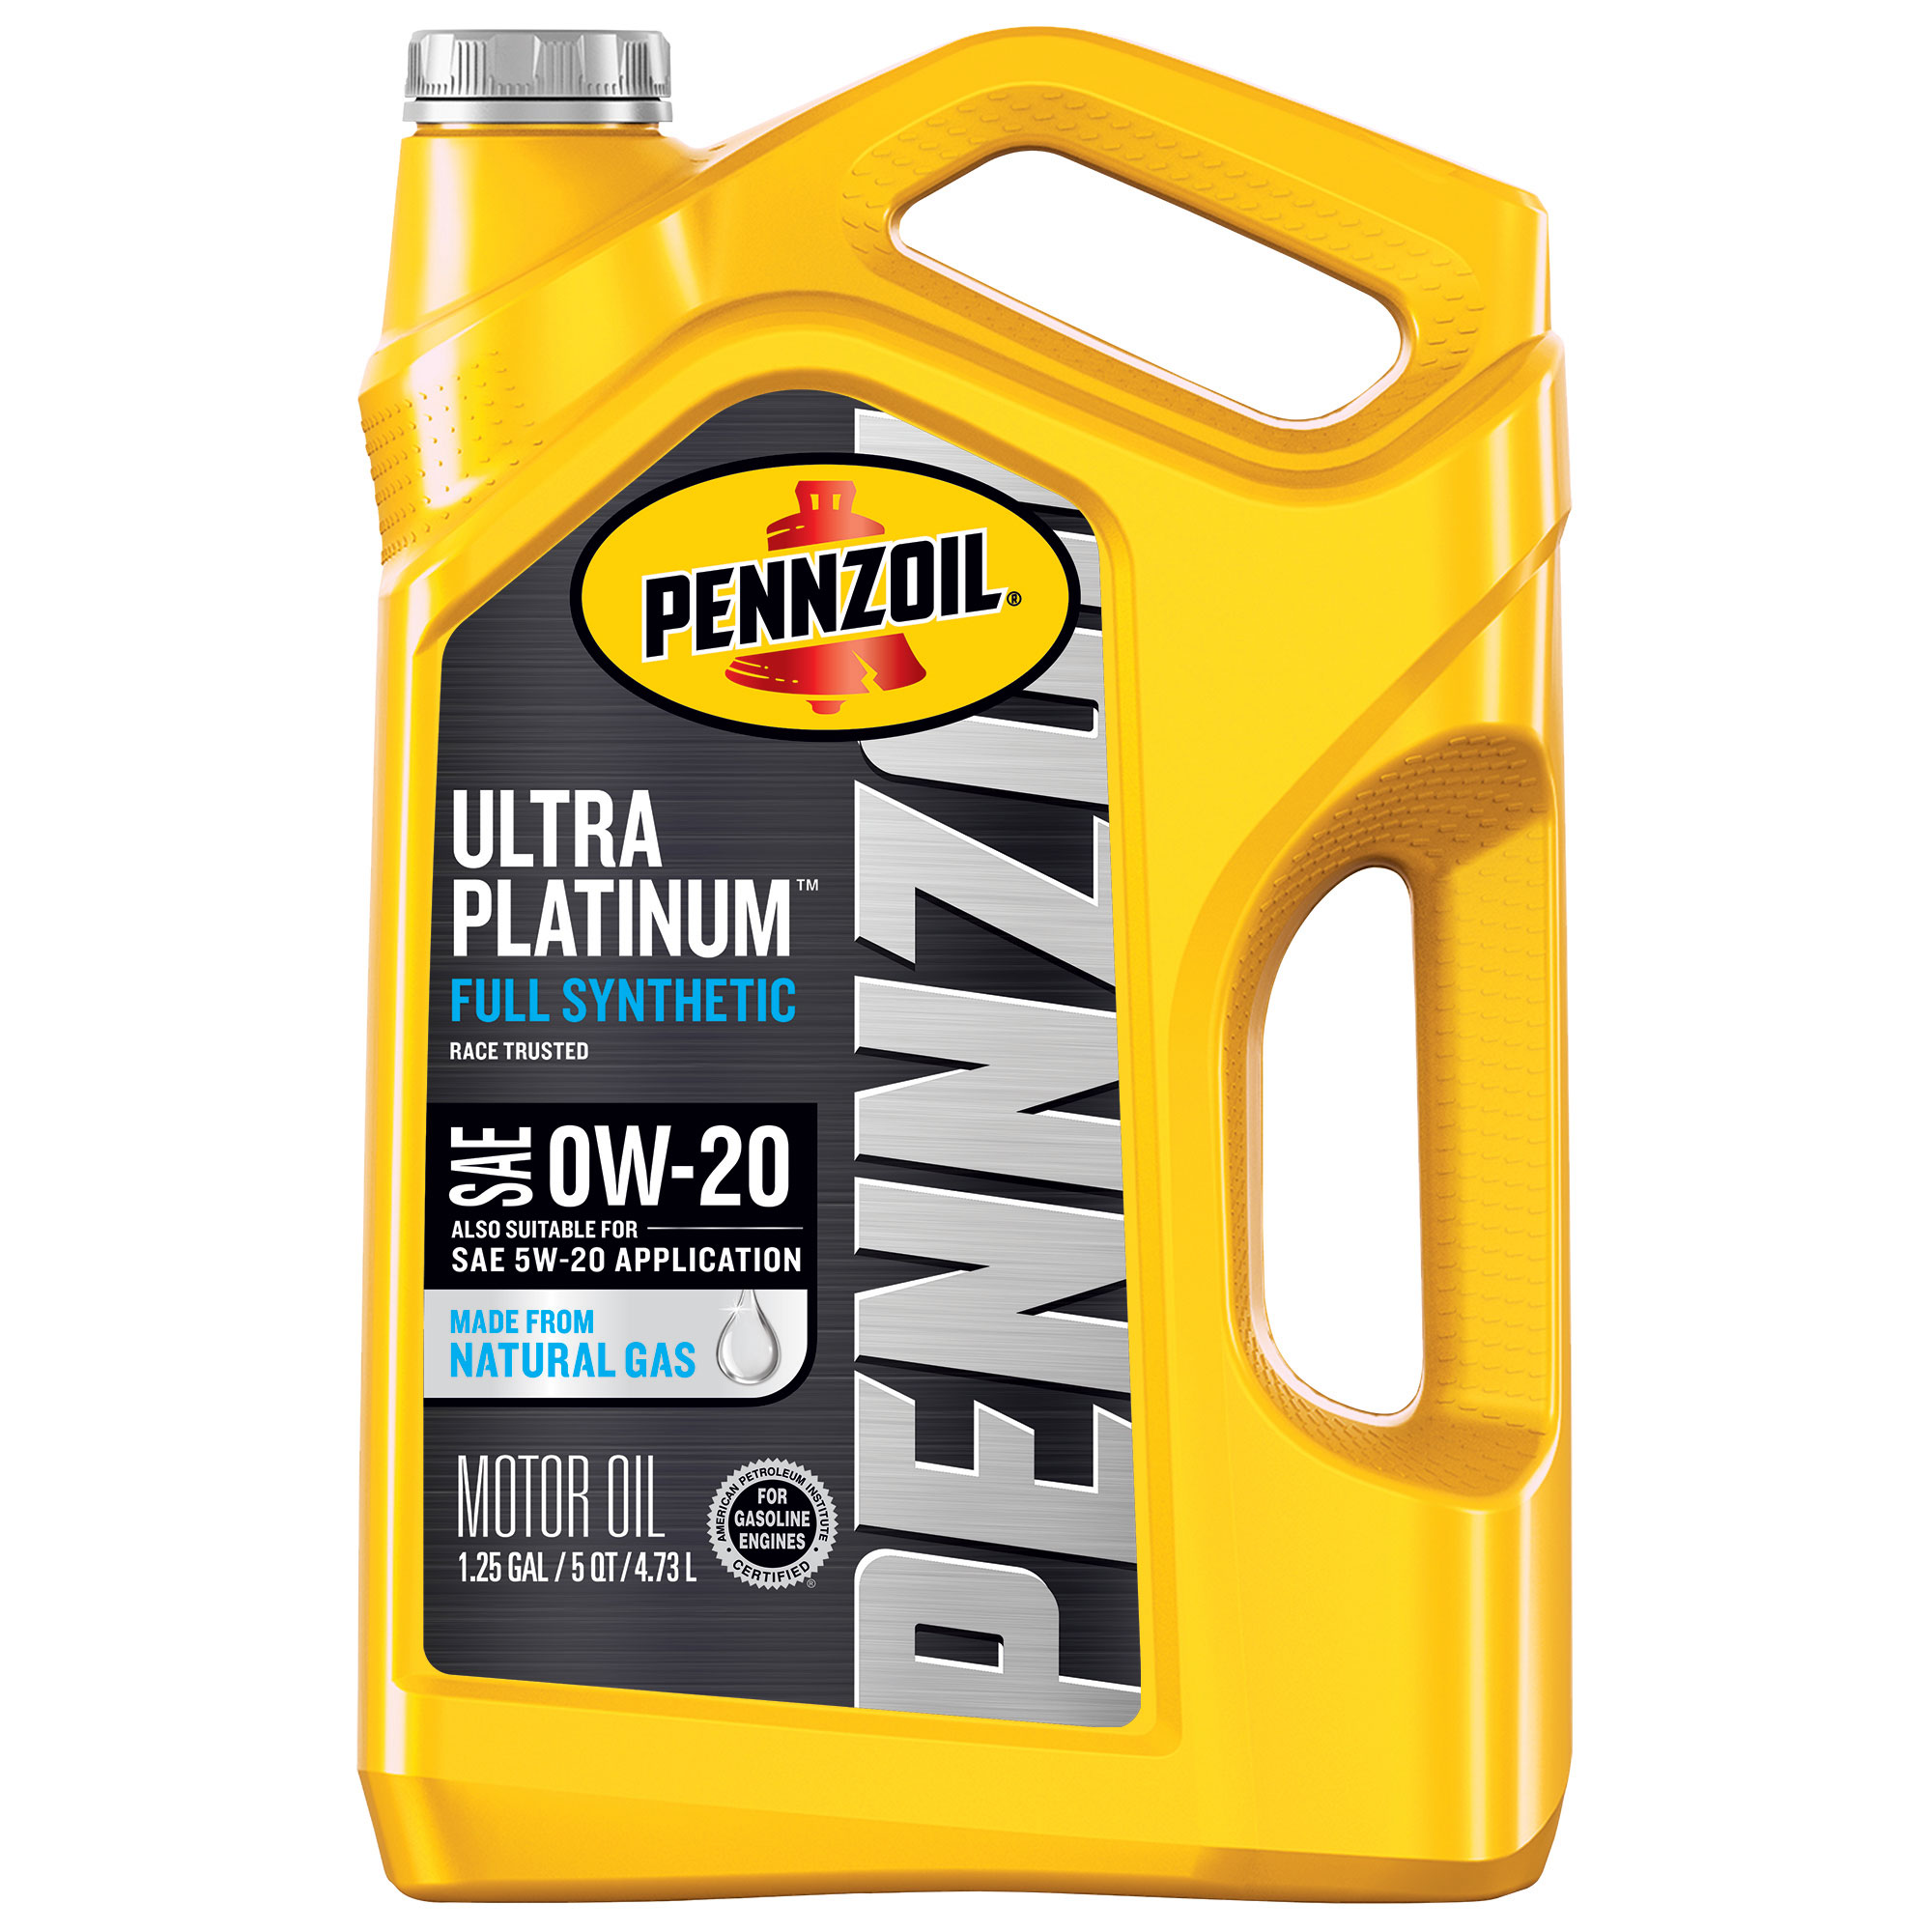 Pennzoil 0W-20 Full Synthetic Oil at Walmart